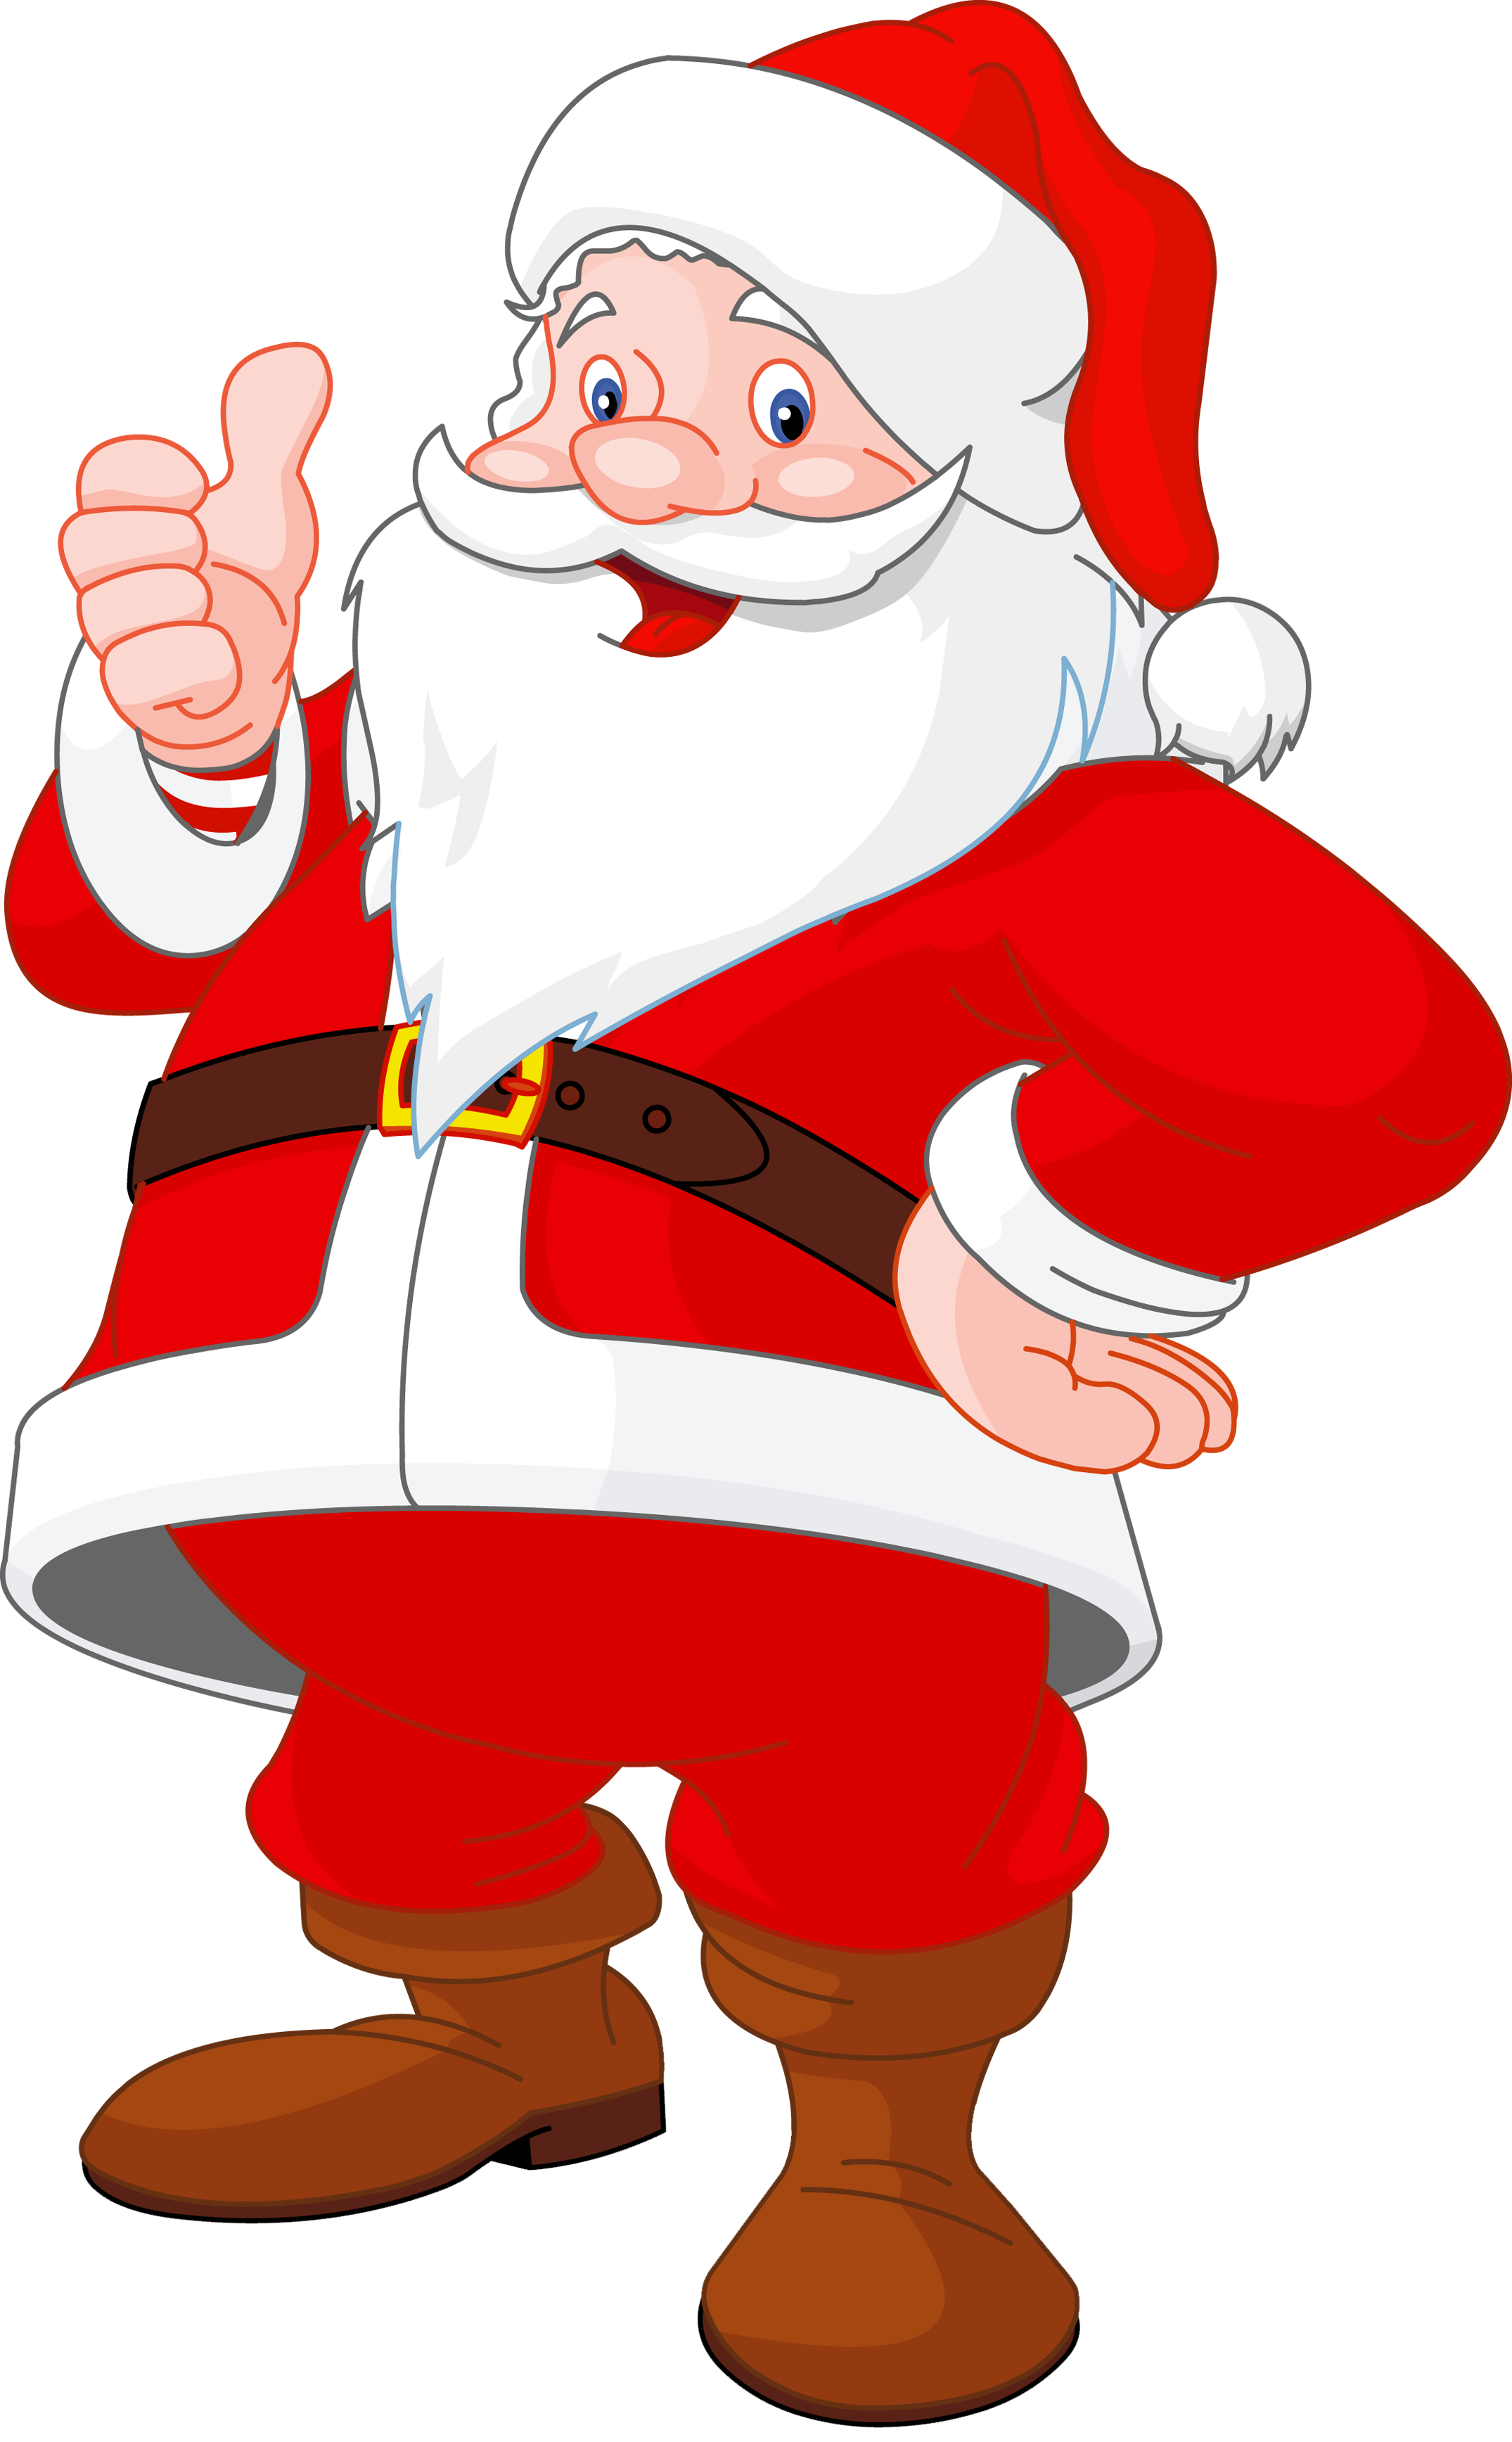 Father Christmas Cartoon Images : father, christmas, cartoon, images, Santa, Claus, Comic, Images,, Drawing,, Vector